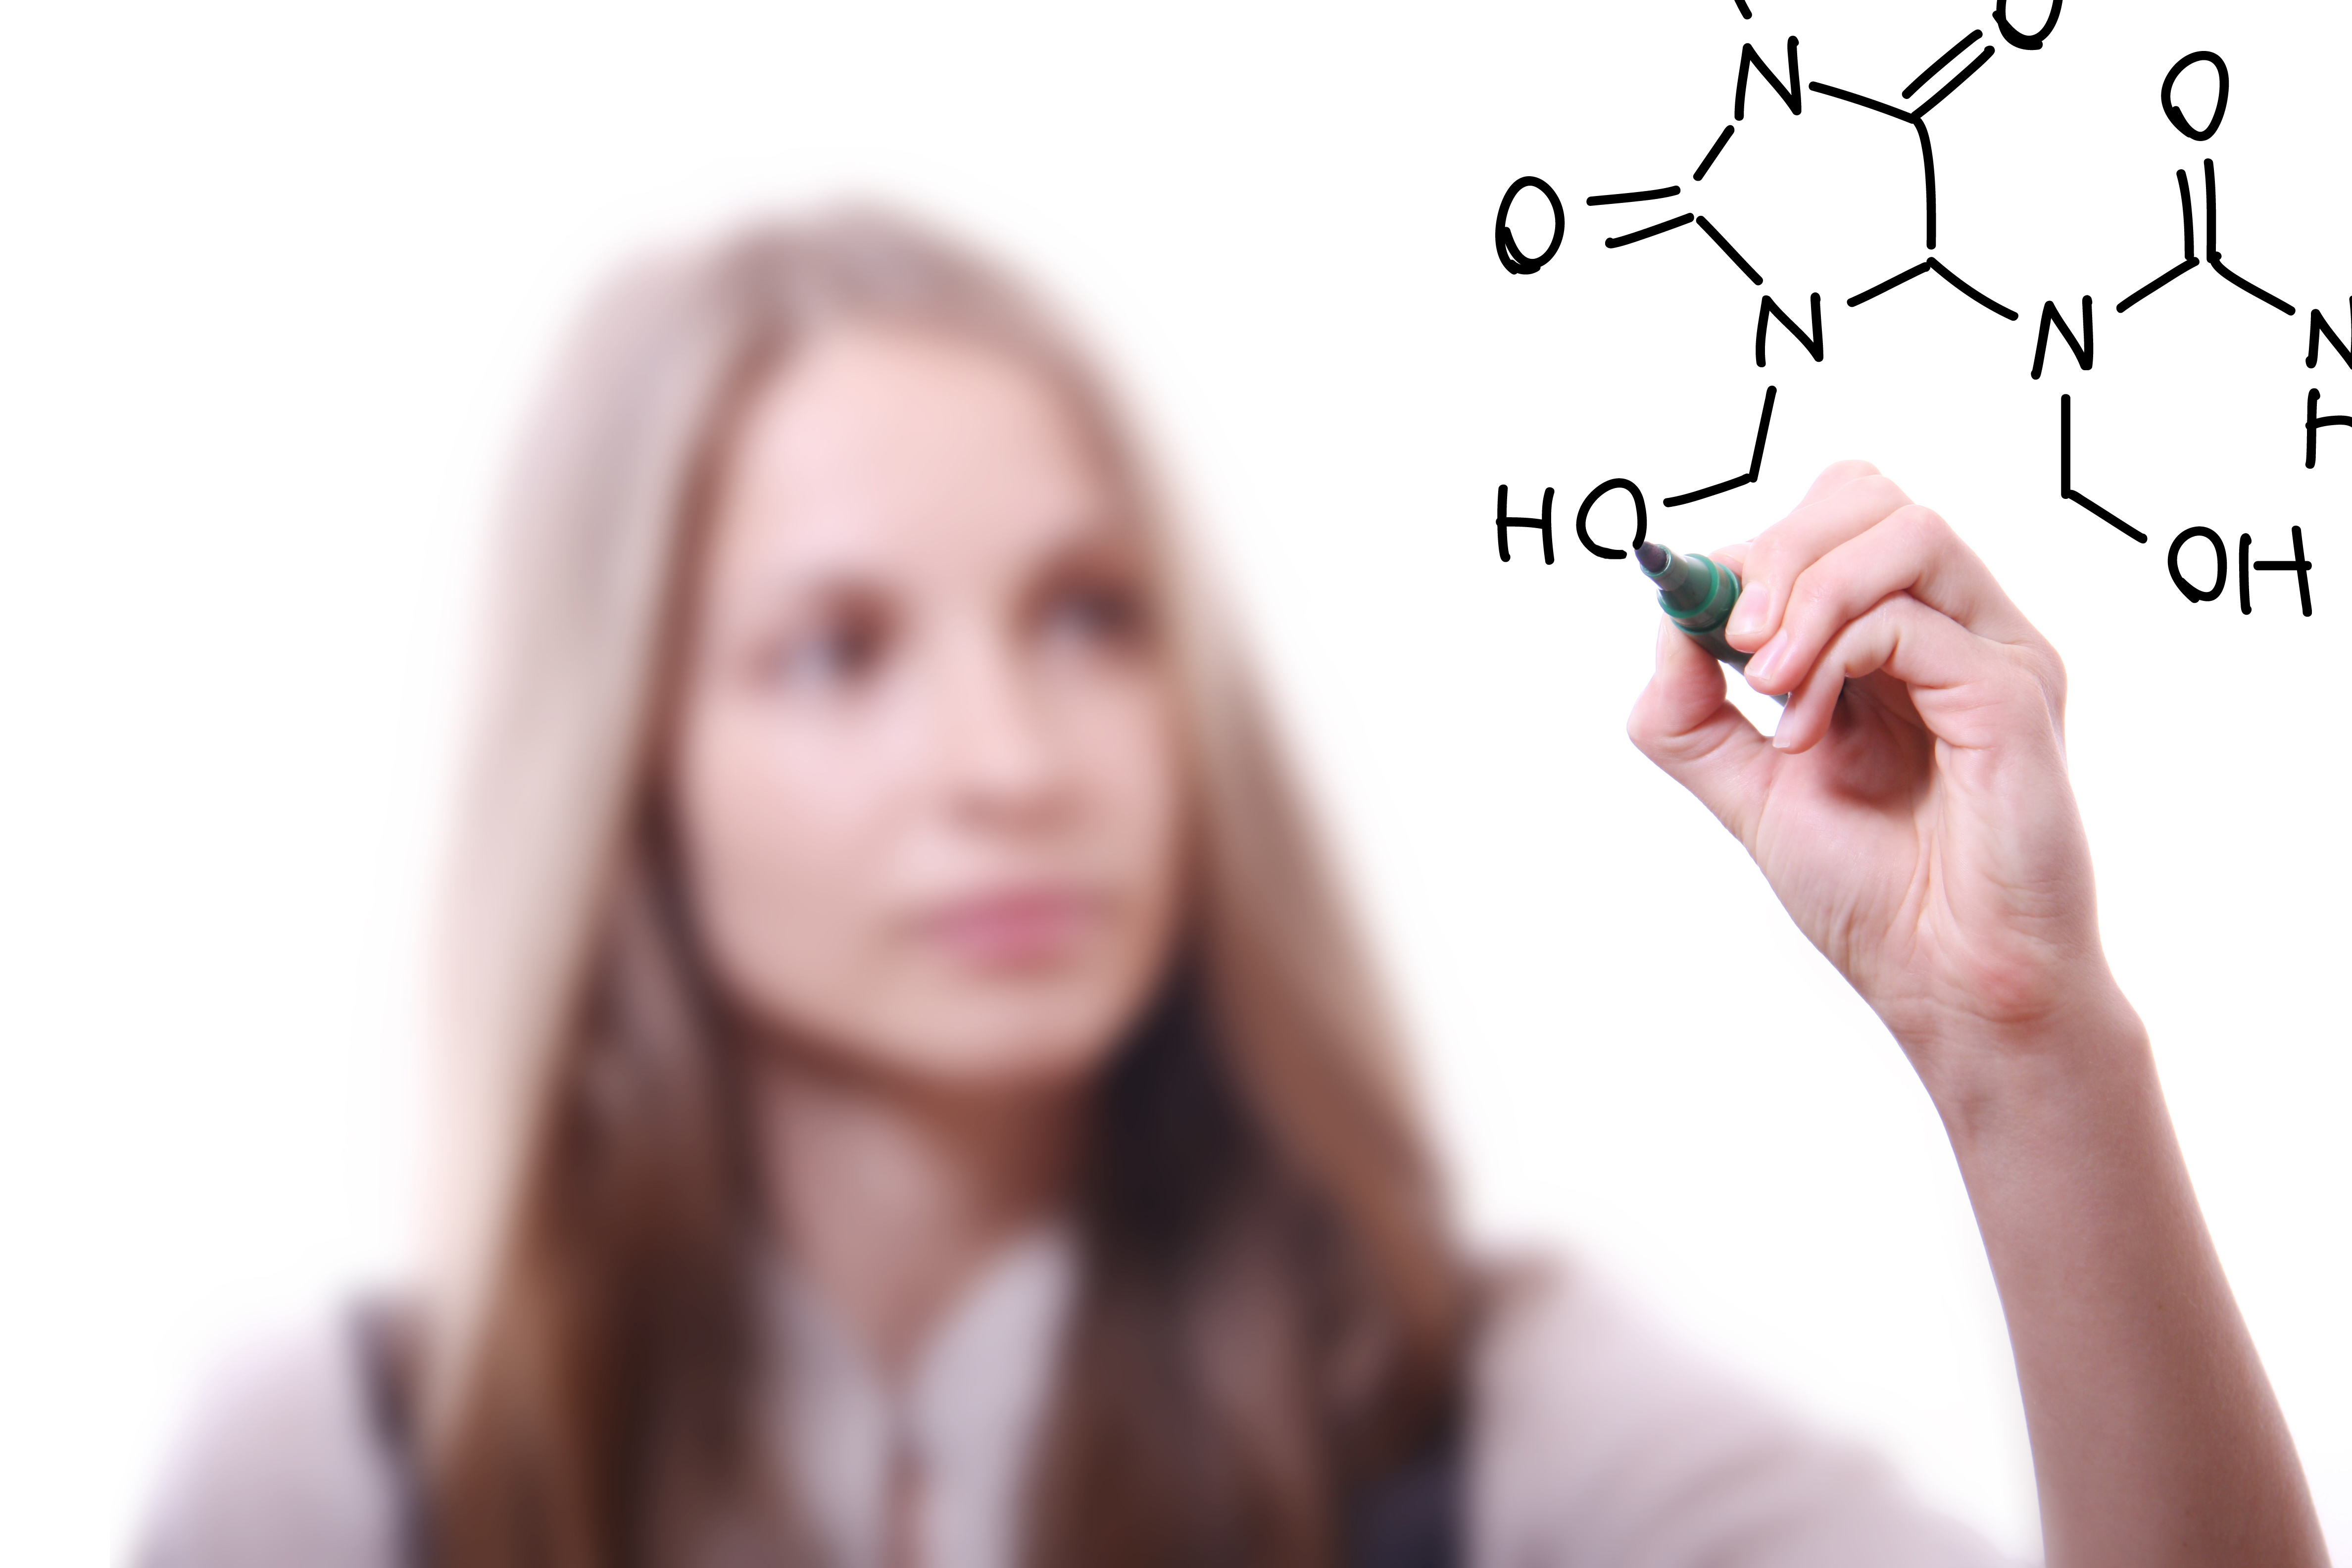 woman chemist shows a molecular structure